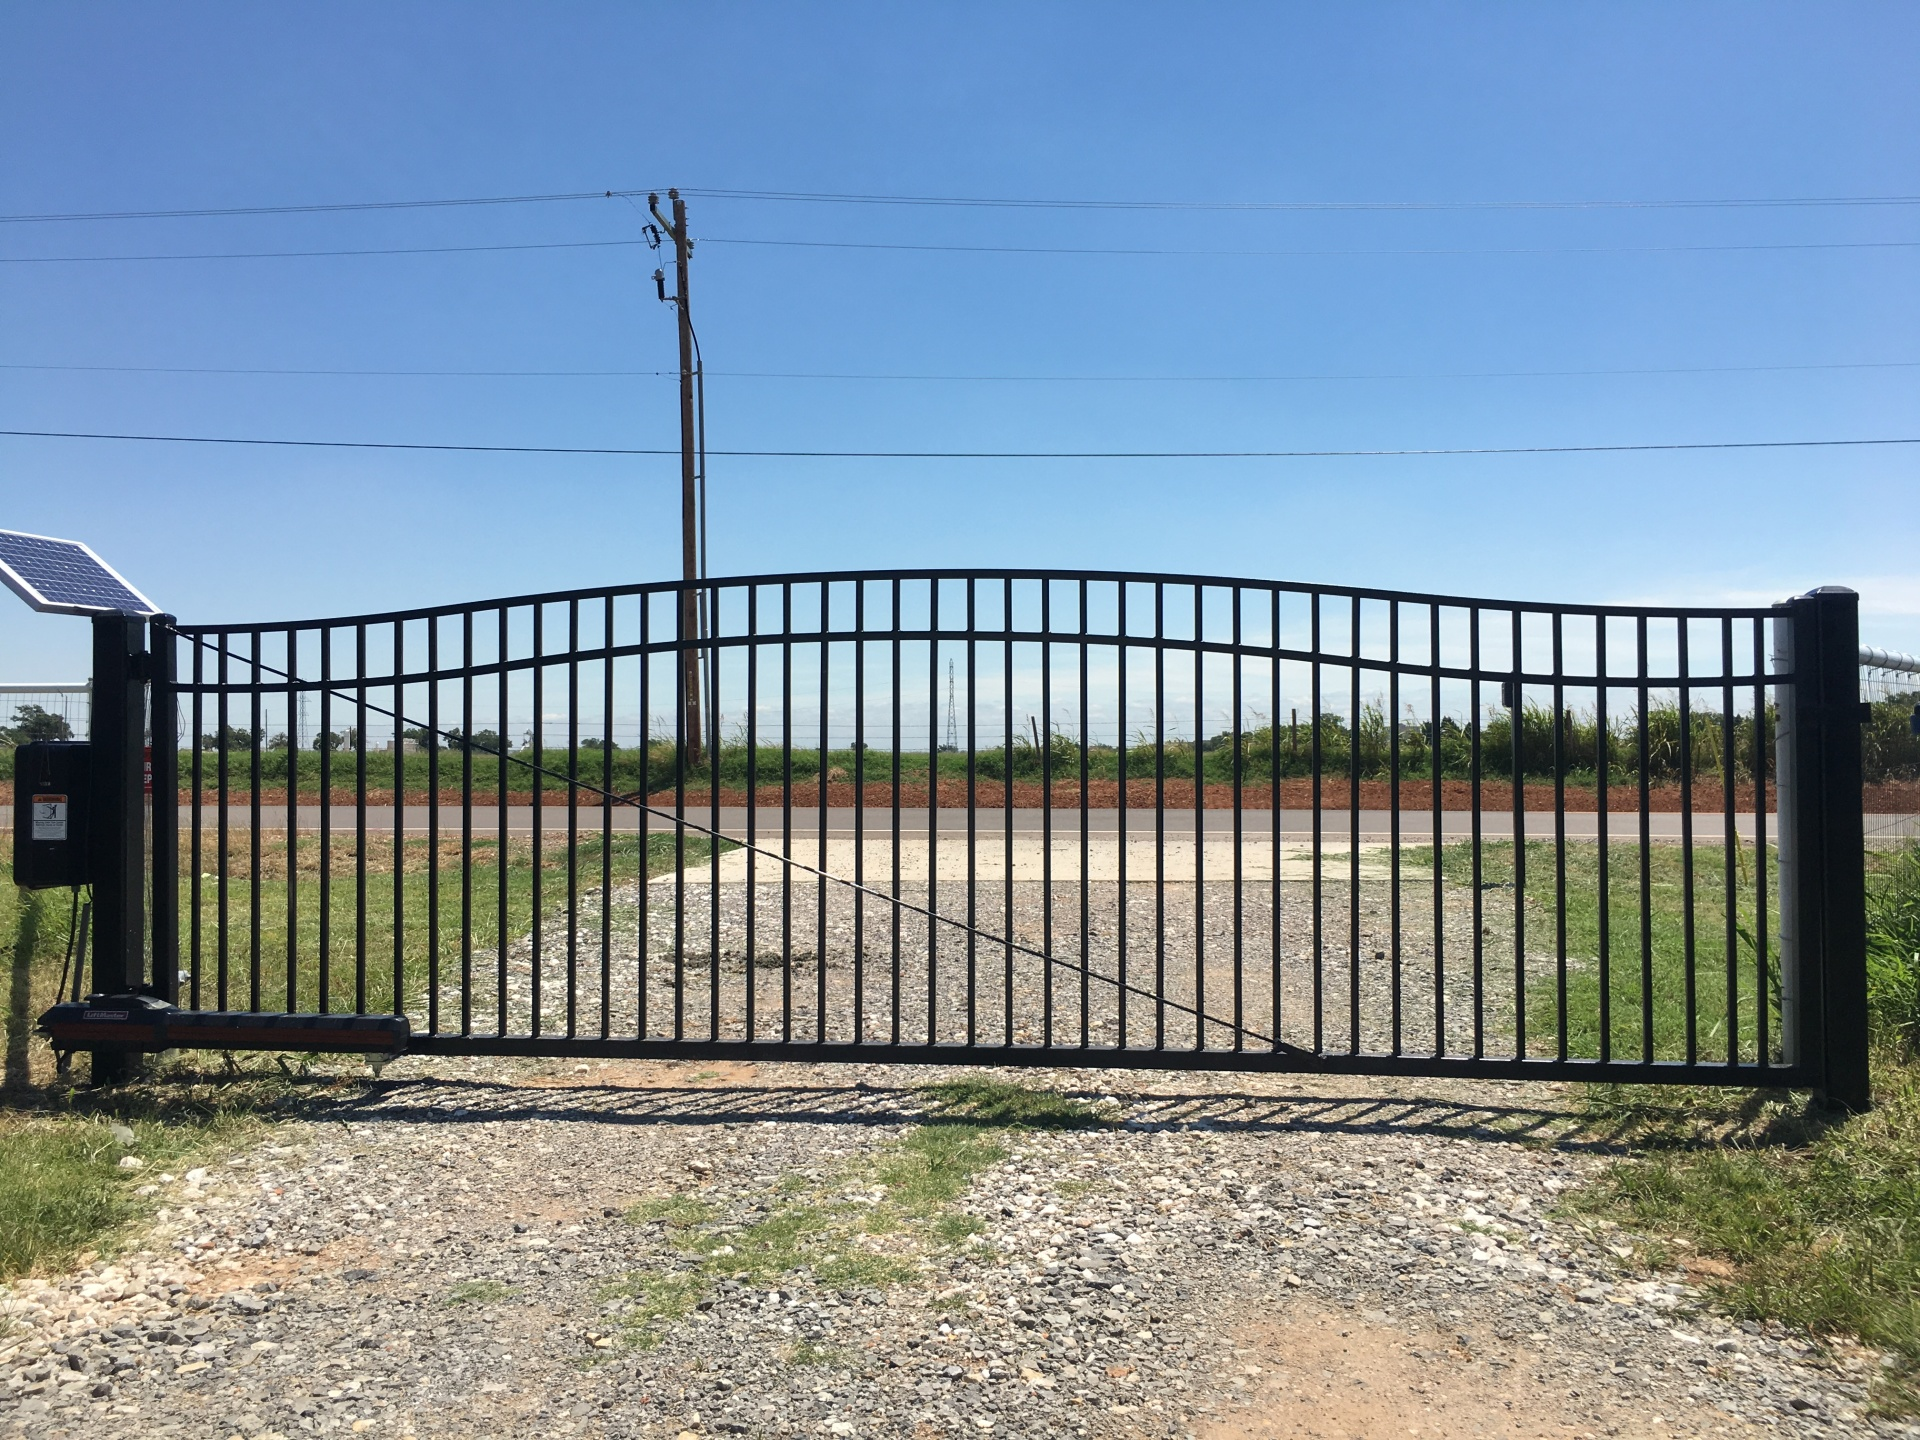 Economical Gate - Edmond fence and gate company - solar openers - gate access - security gates - custom iron gates - driveway gate opener - local oklahoma company